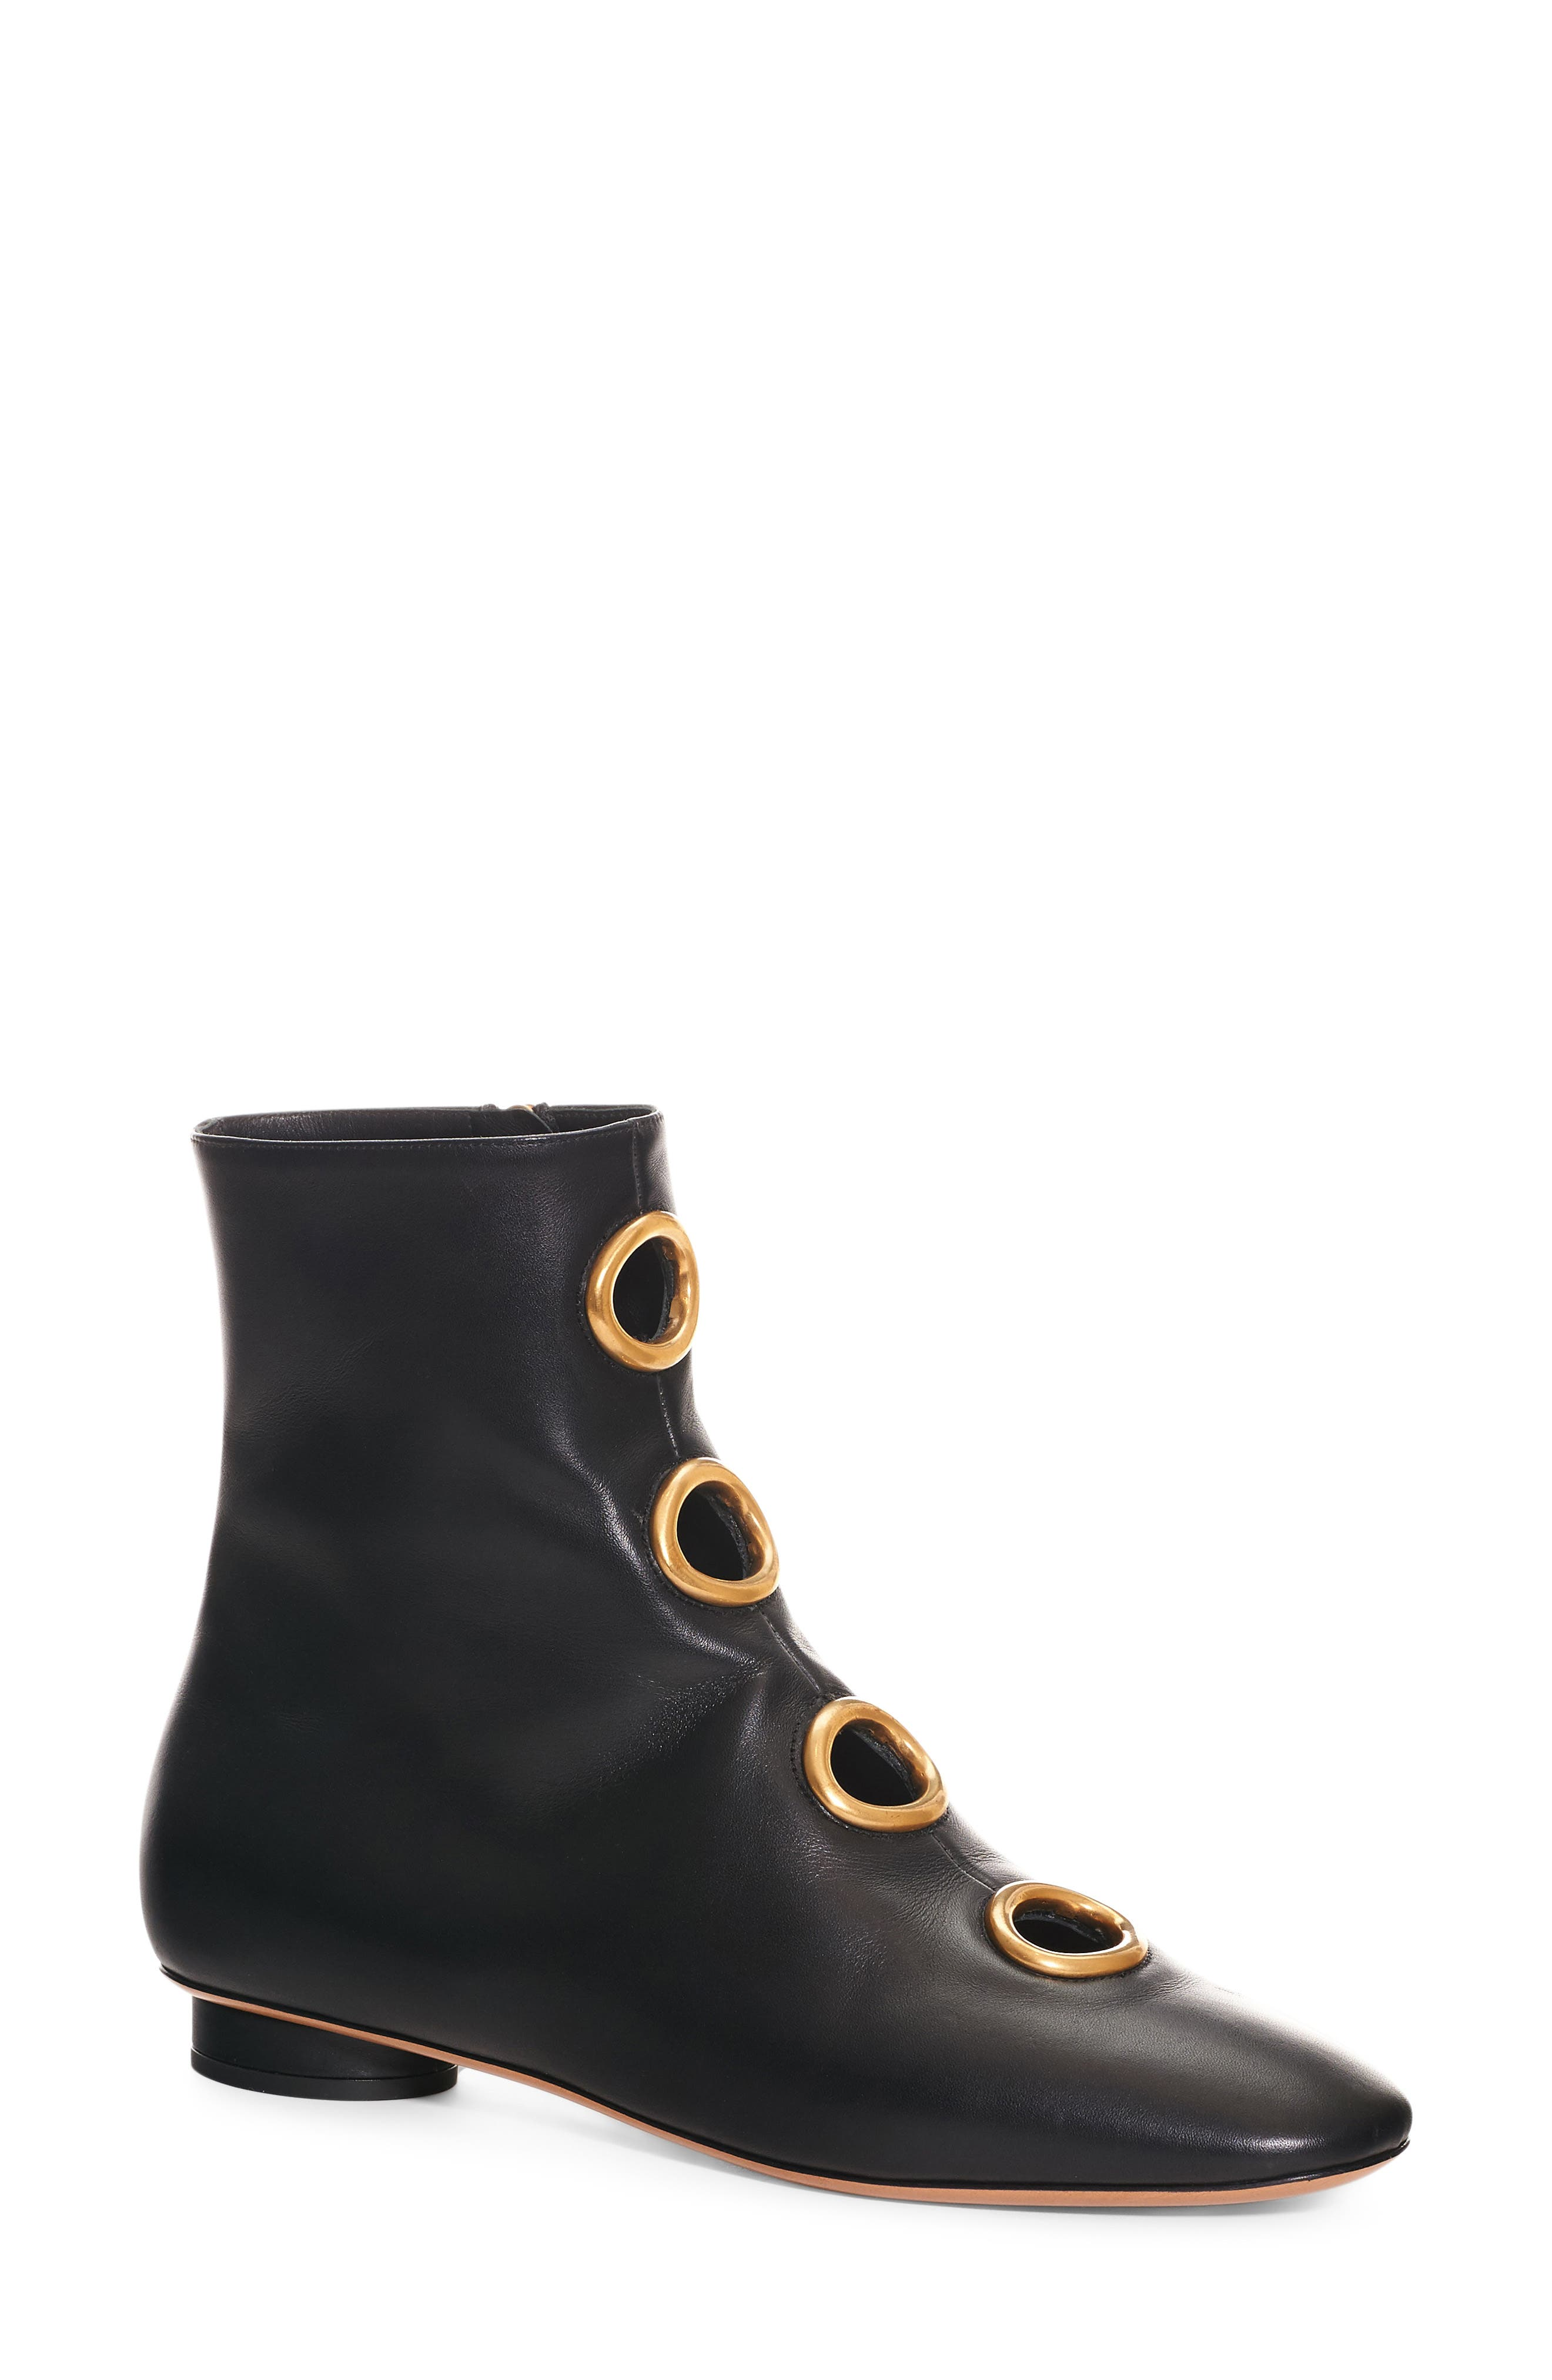 Alternate Image 1 Selected - VALENTINO GARAVANI Grommet Boot (Women)